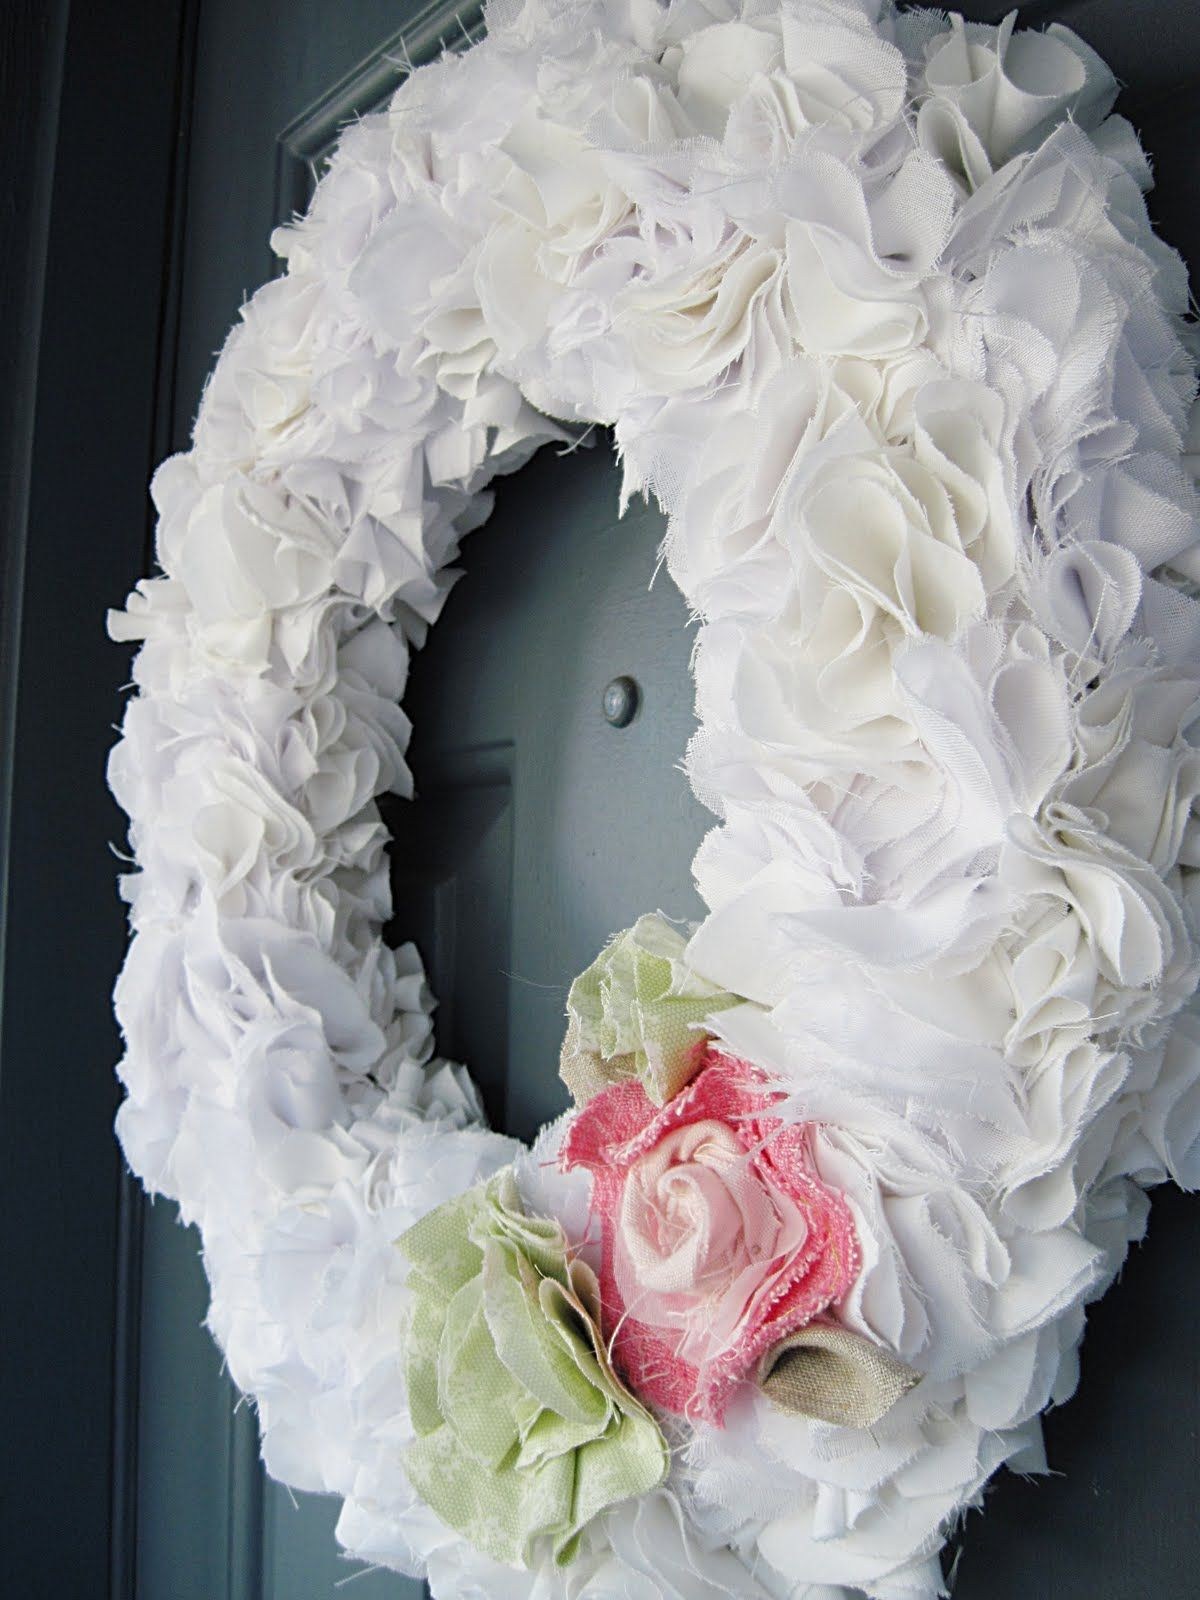 Ruffly White Wreath using inexpensive sheets!